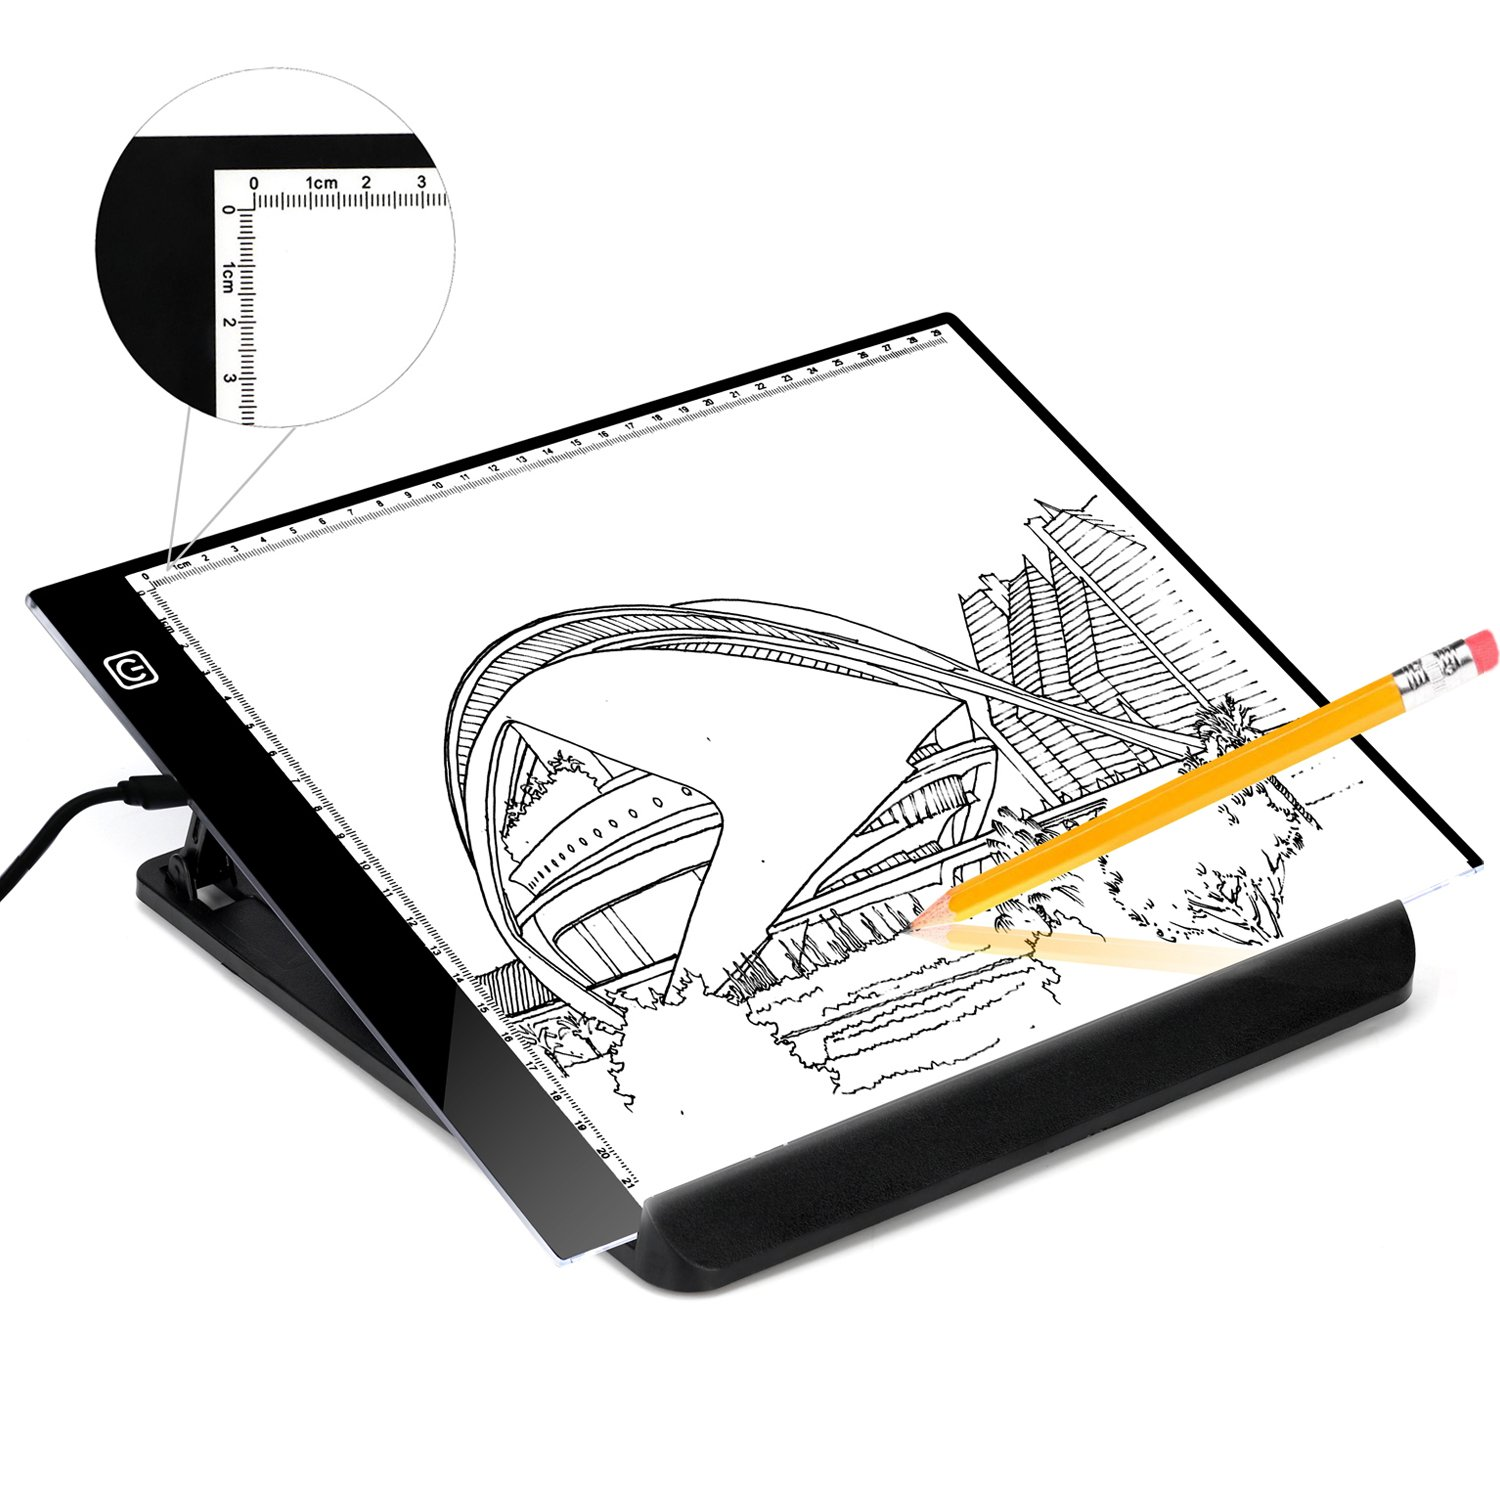 A4 Ultra Light Travel Board for Artist Drawing Sketching Animation X-Ray Viewing Quilting Tattoo Sewing, Portable LED Tracing Light Board Pad Brightness Control with USB Power Cable, Great for Kids